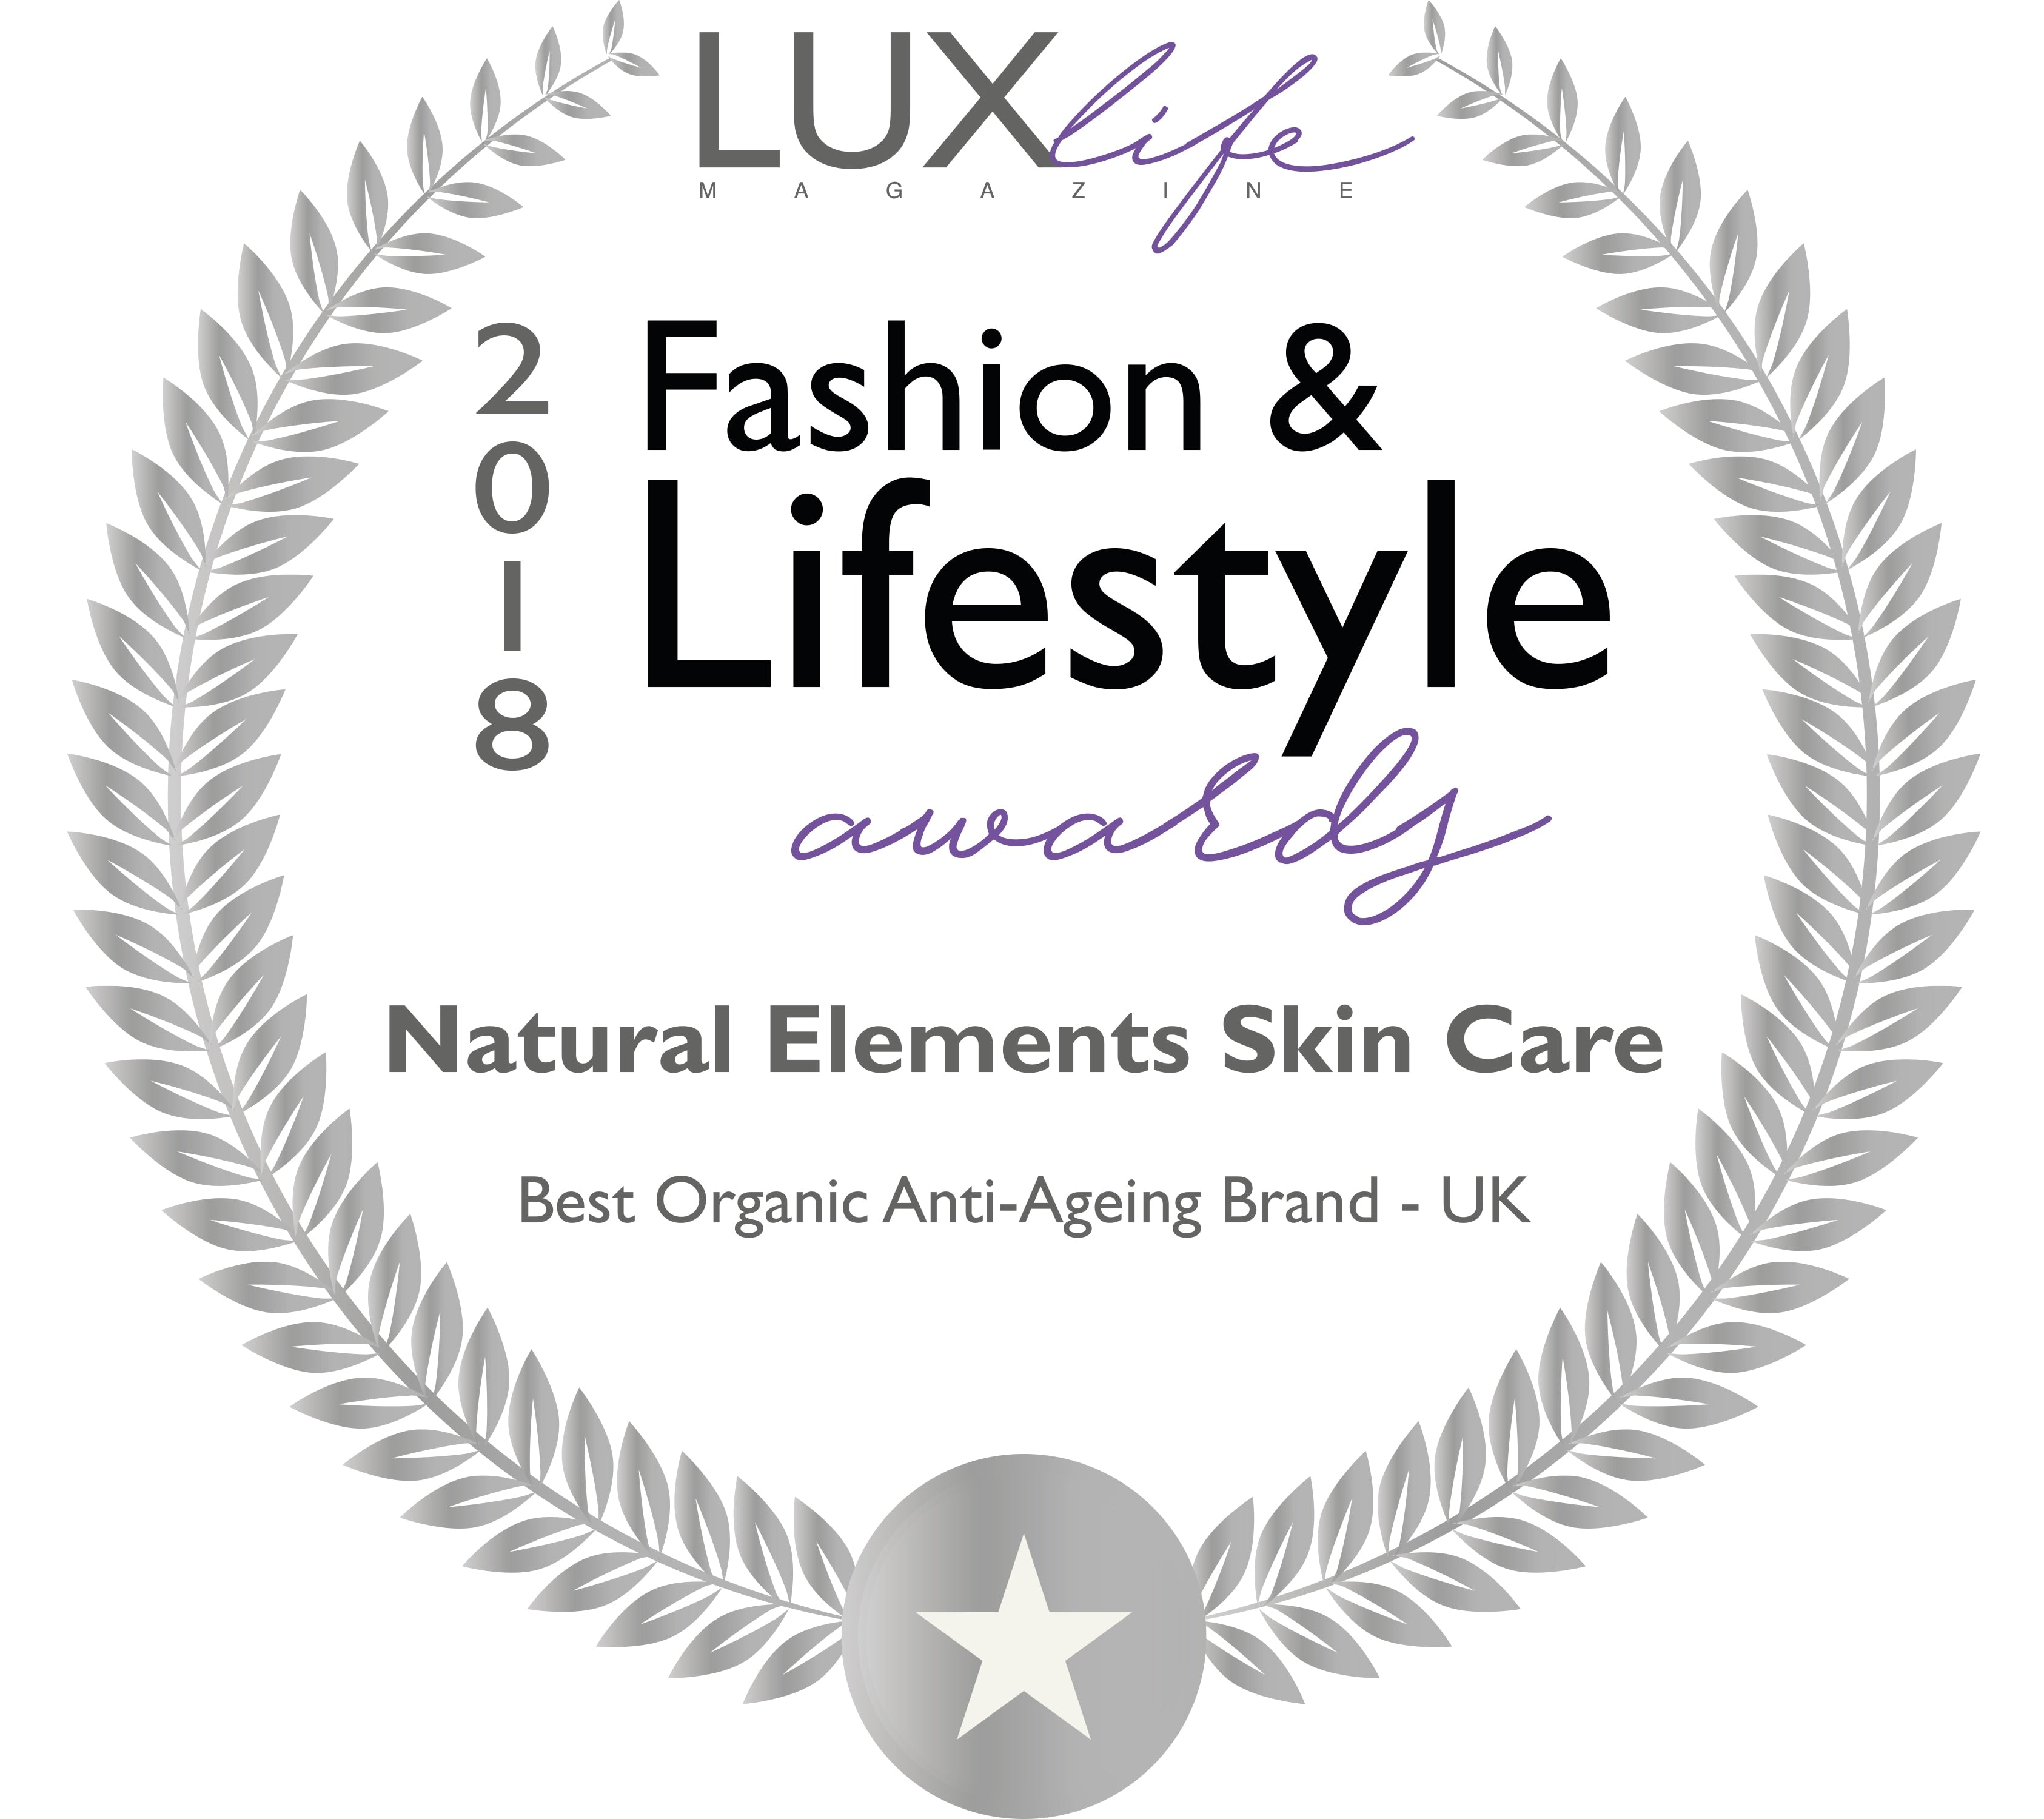 fal18024-lux-fashion-lifestyle-award-winners-logo.jpg